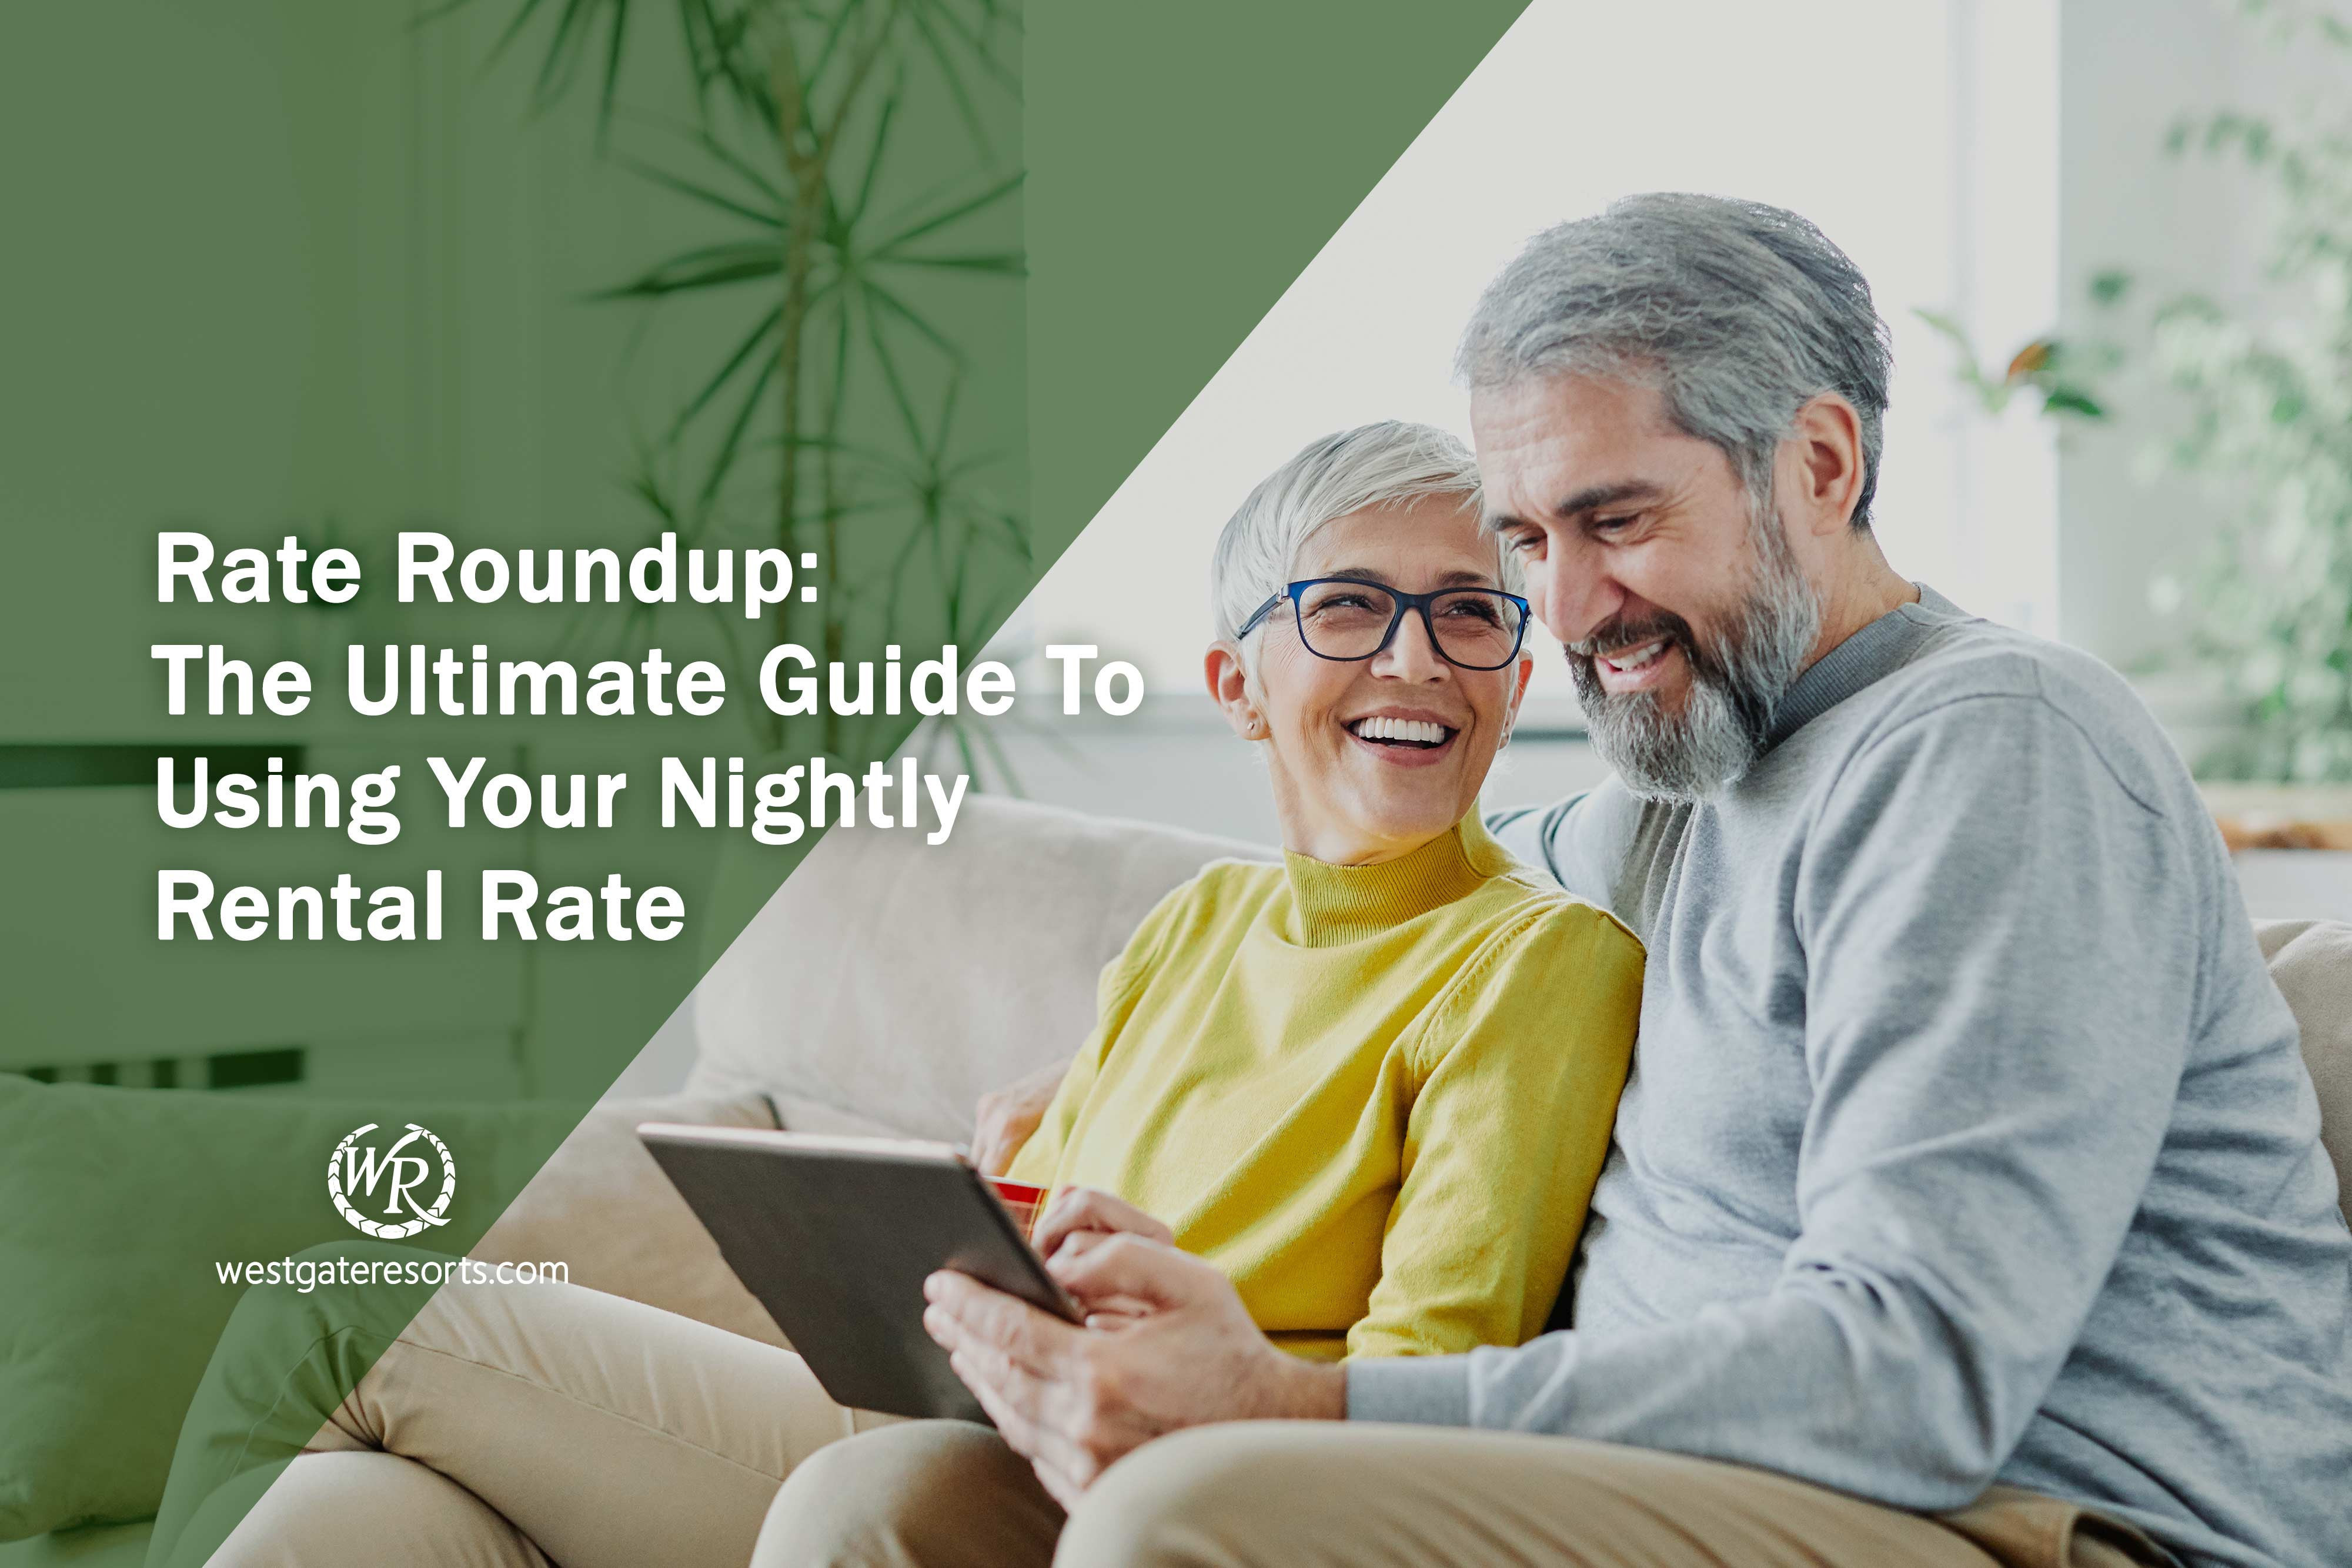 Rate Roundup: The Ultimate Guide to Using Your Nightly Rental Rate